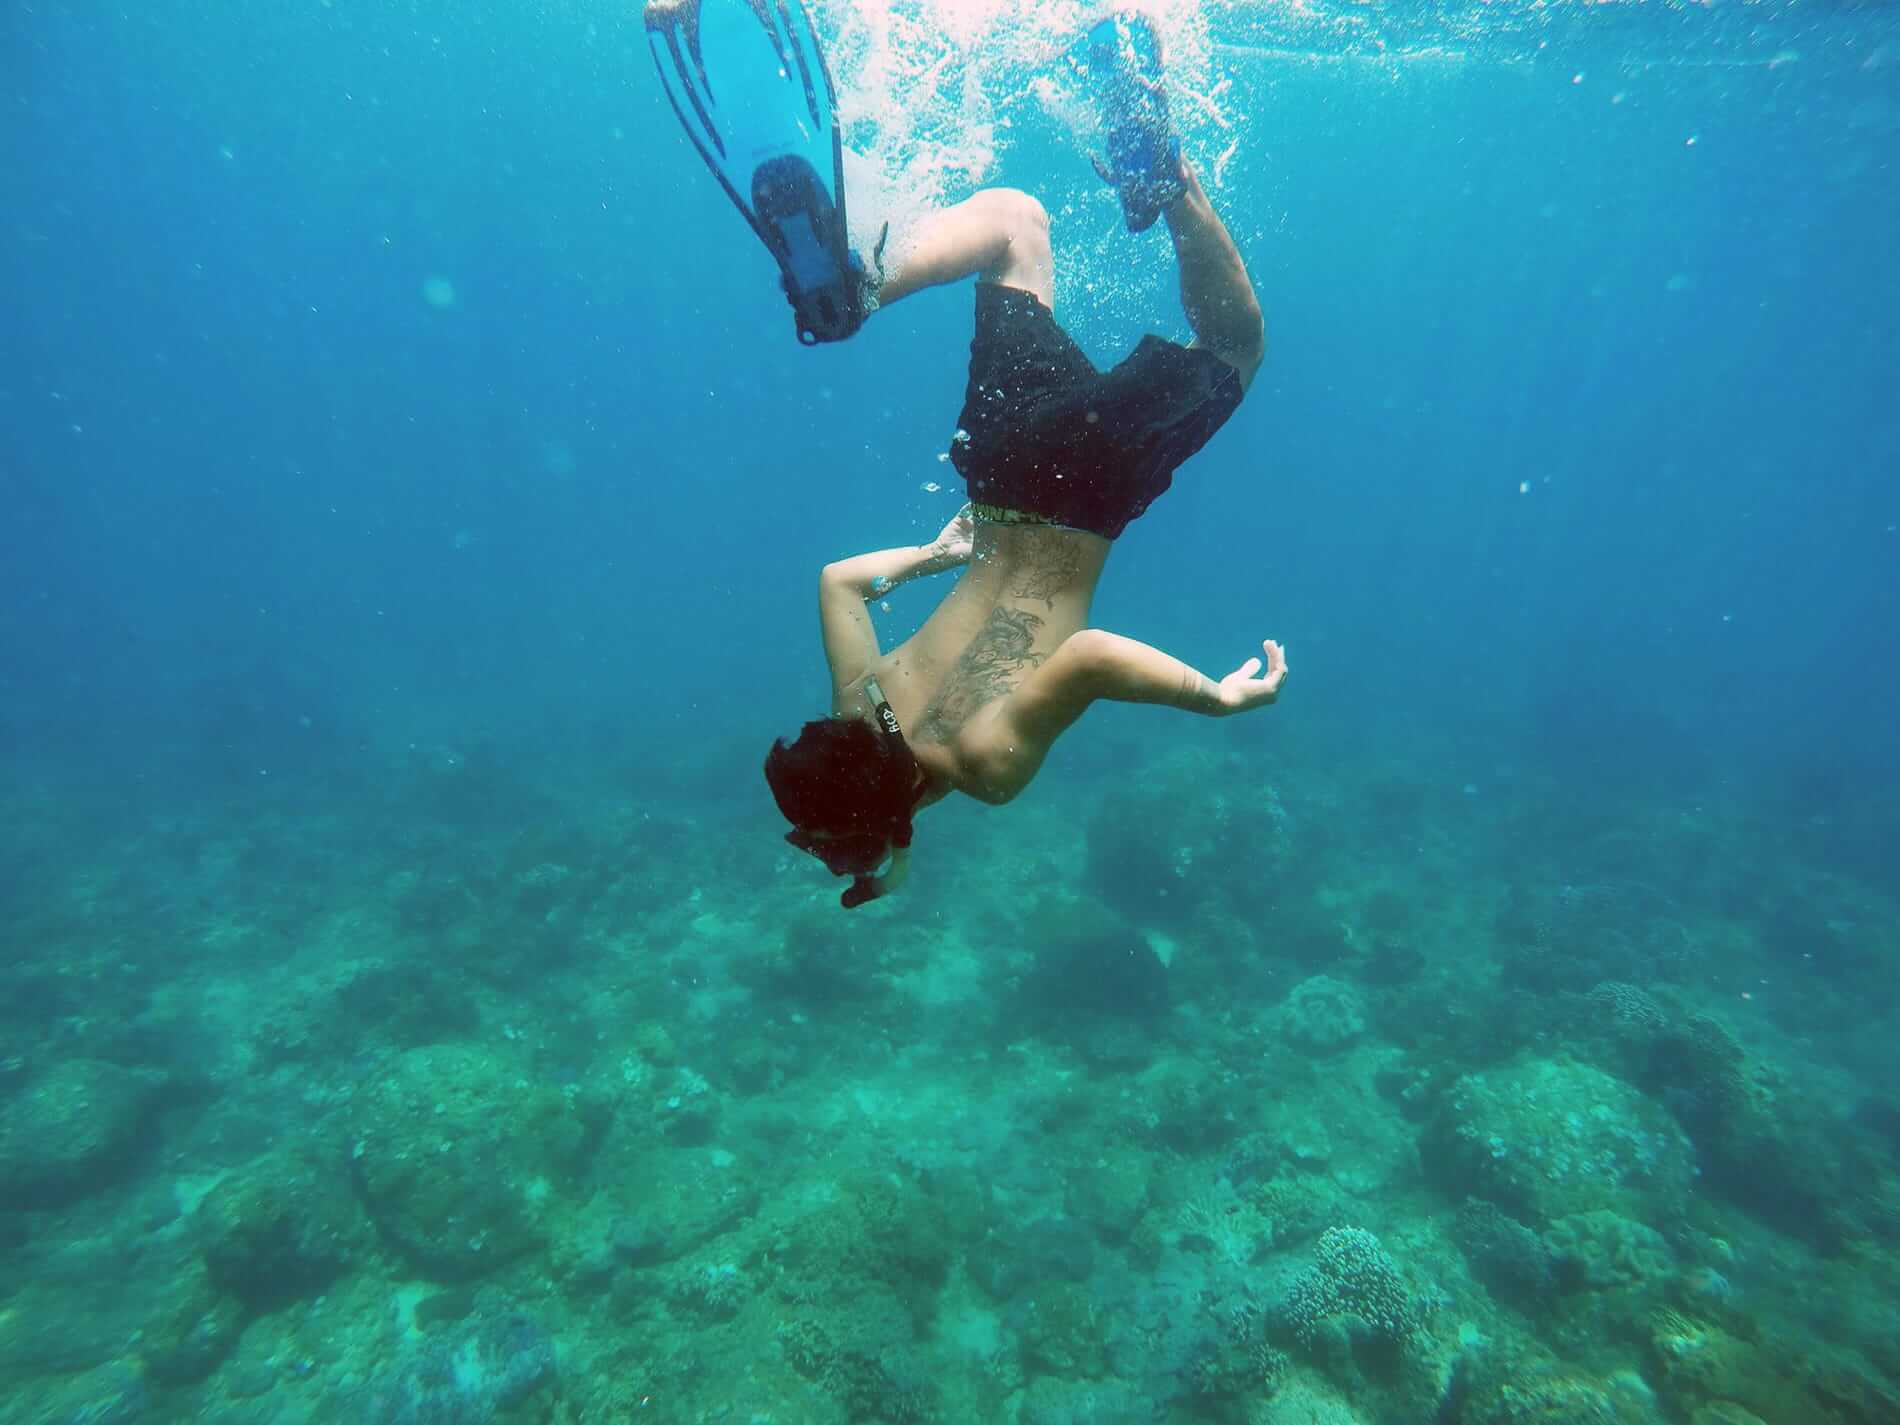 Snorkeling in the clear waters around the Cham Islands